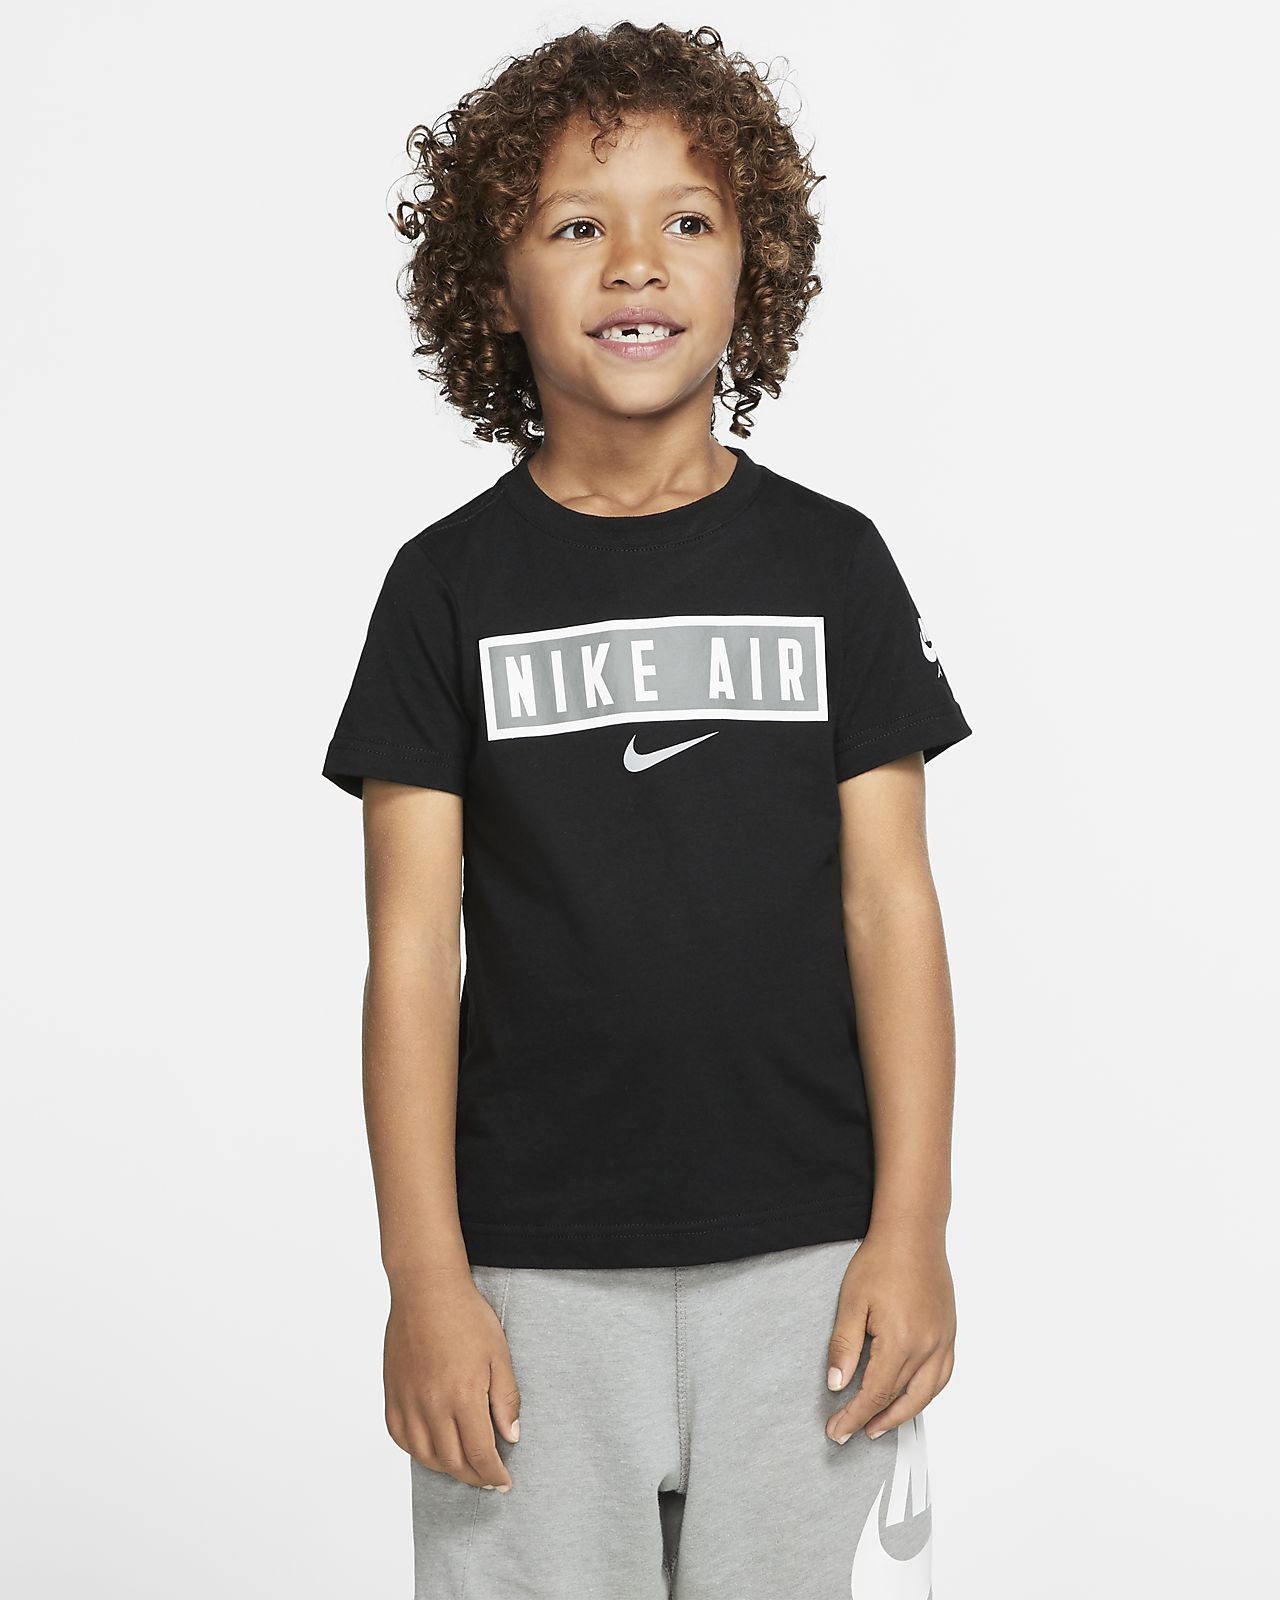 Nike Air Little Kids' Short-Sleeve T-Shirt